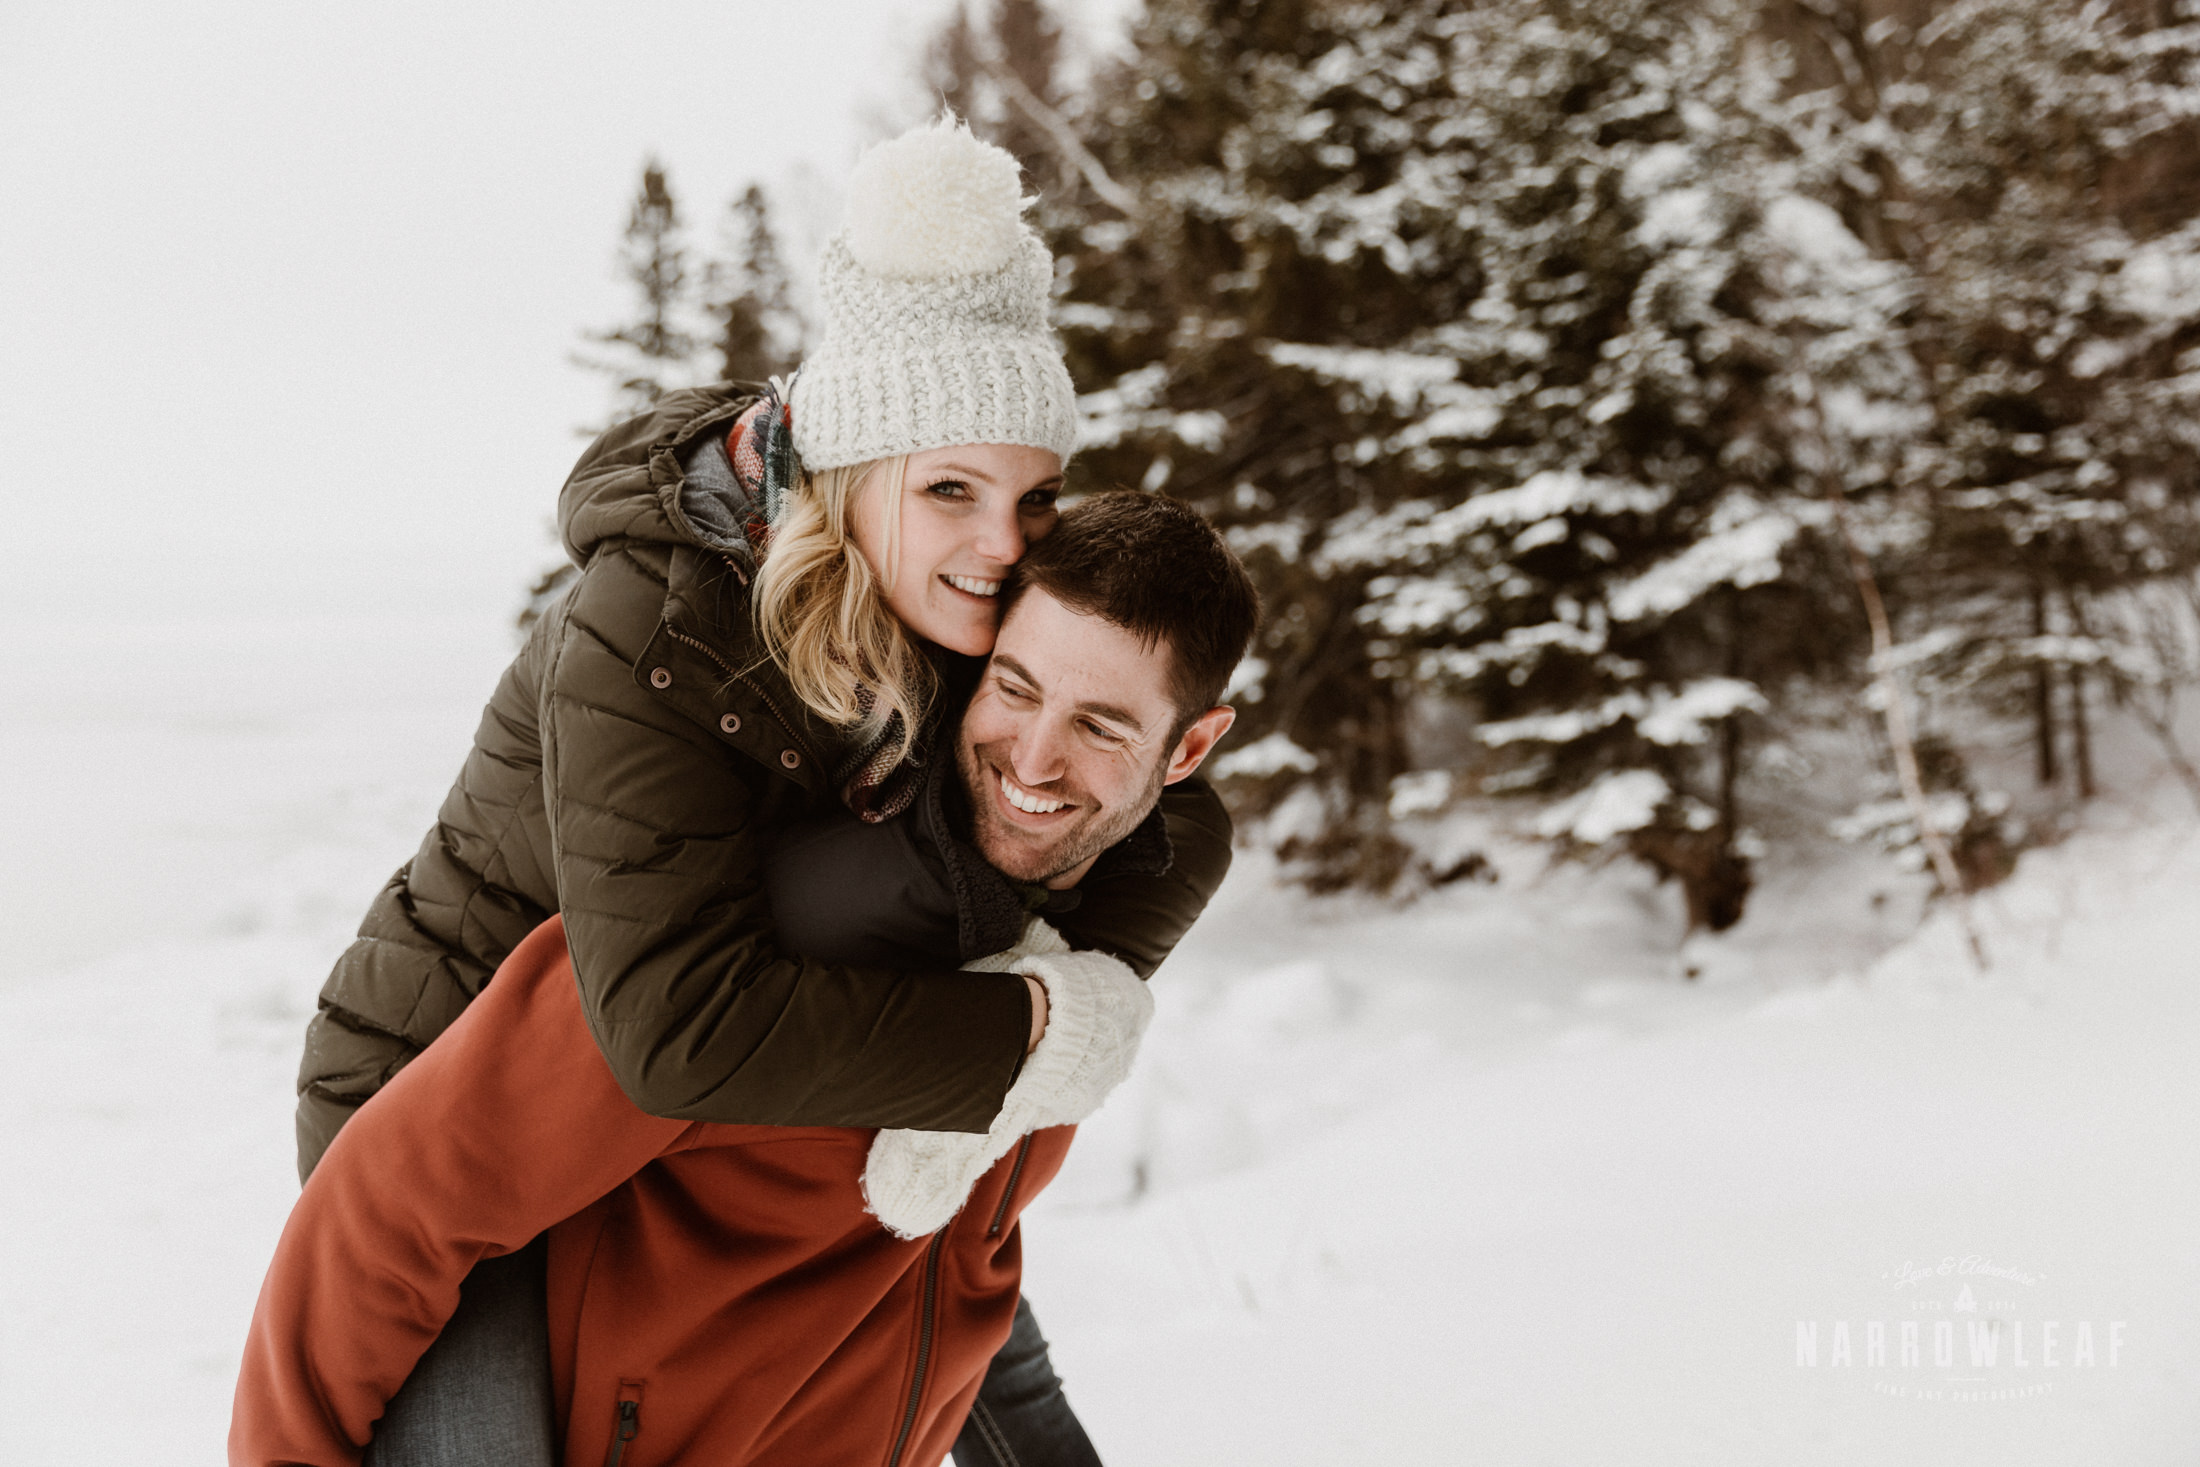 North-Shore-Minnesota-winter-Engagement-photos-Narrowleaf-Adventure-Photography-8948.jpg